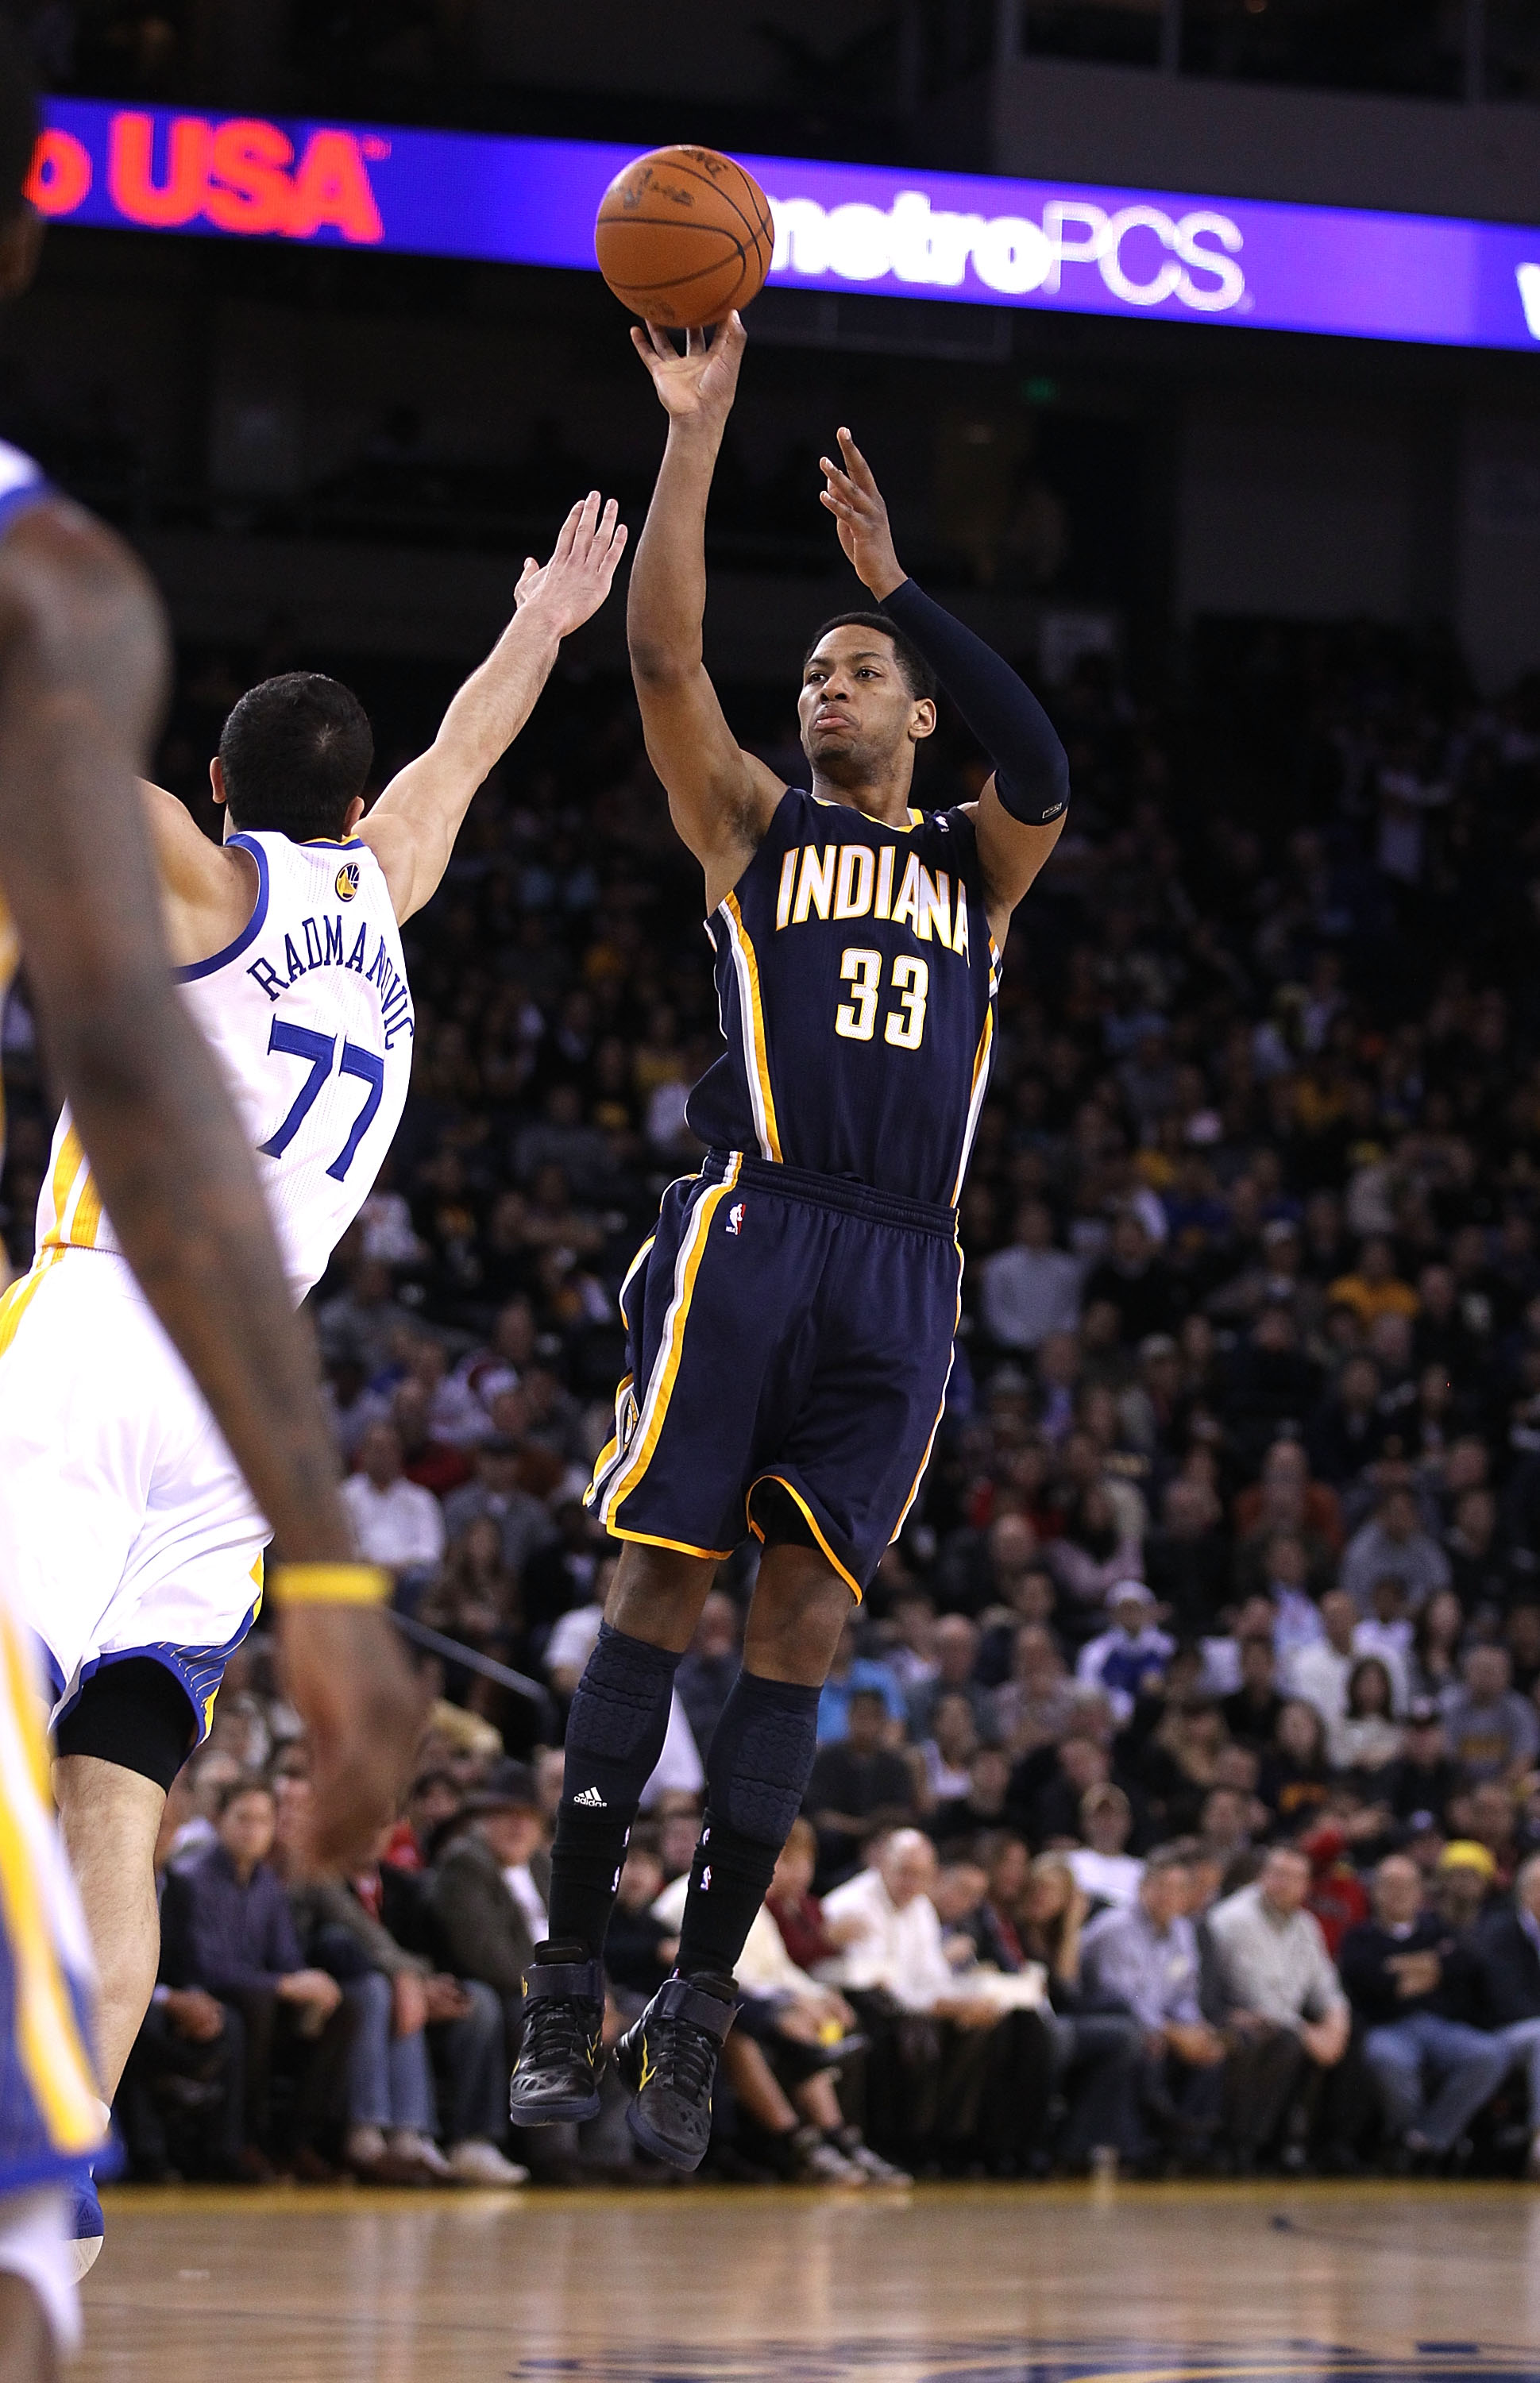 Danny Granger has been the lone bright spot on the Pacers this season